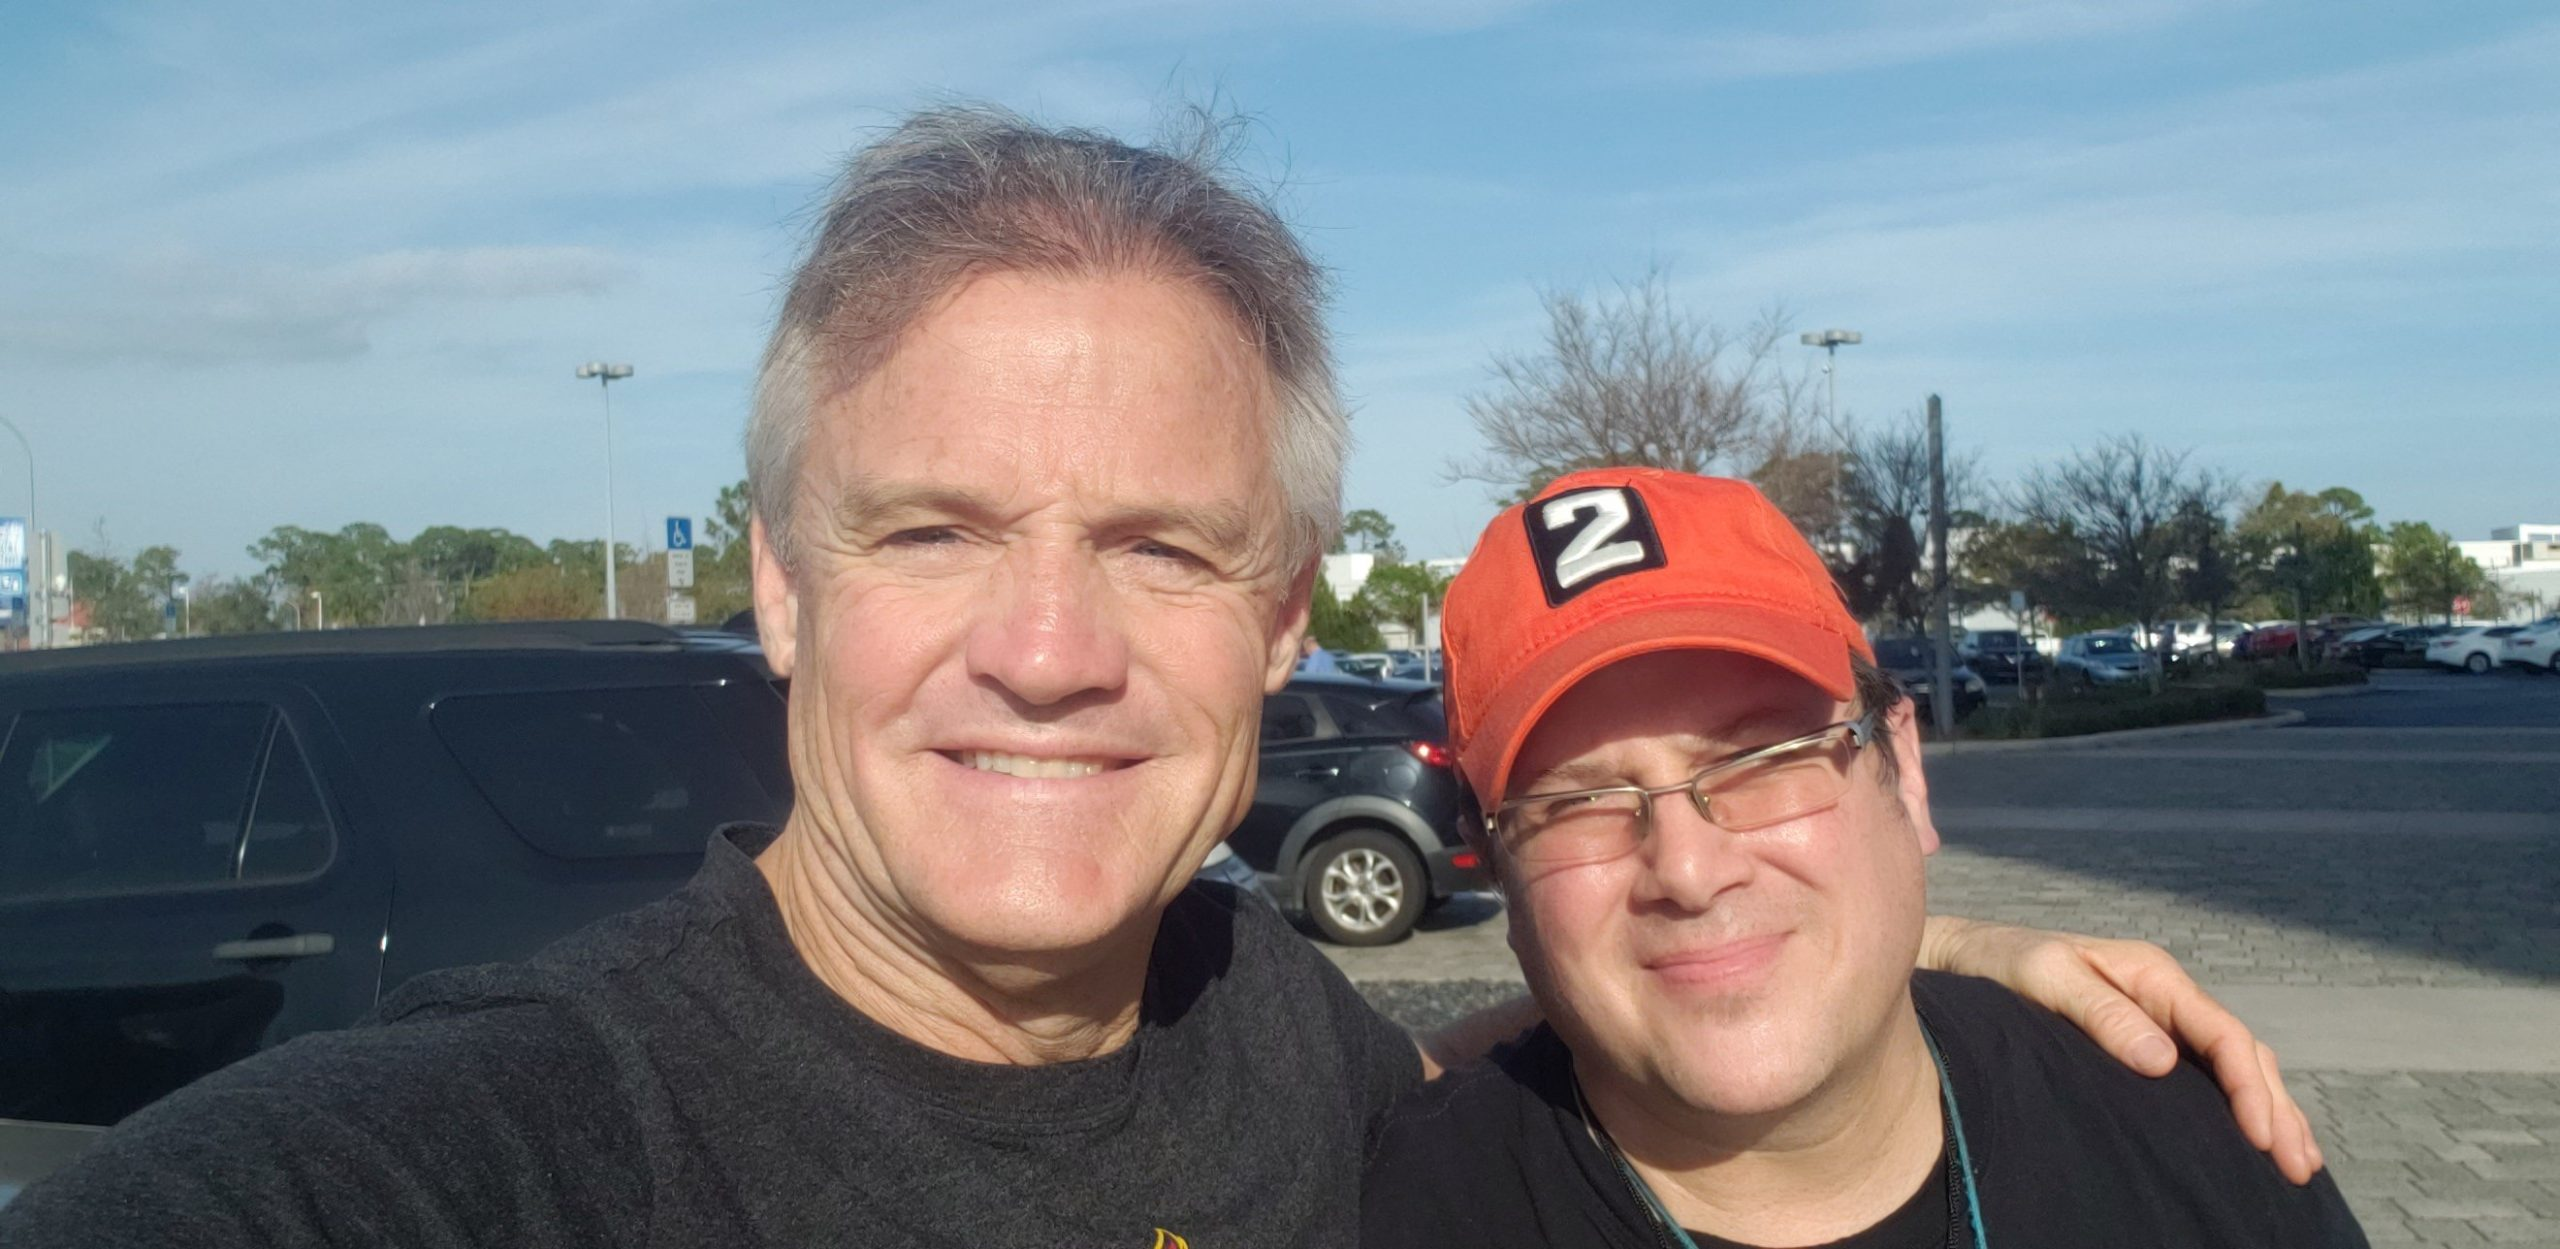 Kenny Wallace Previews Daytona Presidential Visit And Possible Future Of Nascar Wgn Radio 720 Chicago S Very Own His birthday, what he did before fame, his family life, fun trivia facts his older brother rusty wallace was the better known nascar racer, winning the 1989 nascar. kenny wallace previews daytona